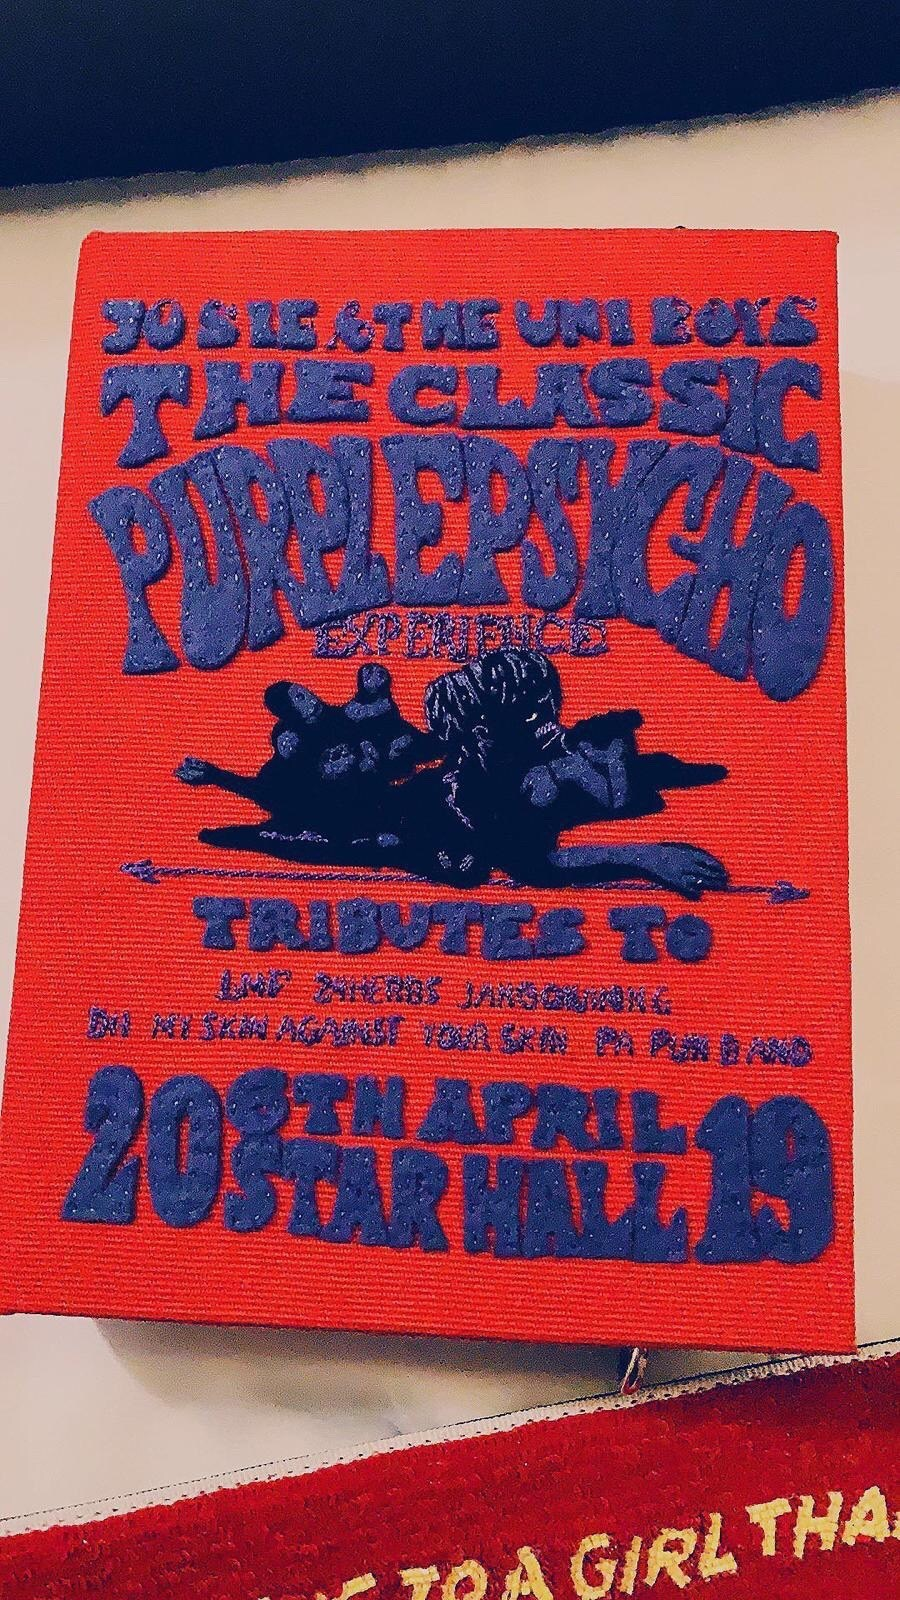 "Josie's band poster ""The Classic Purple Psycho Experience"" that inspired the bag and collaboration with Olympia Le Tan. (CNW Group/Niki Inc)"